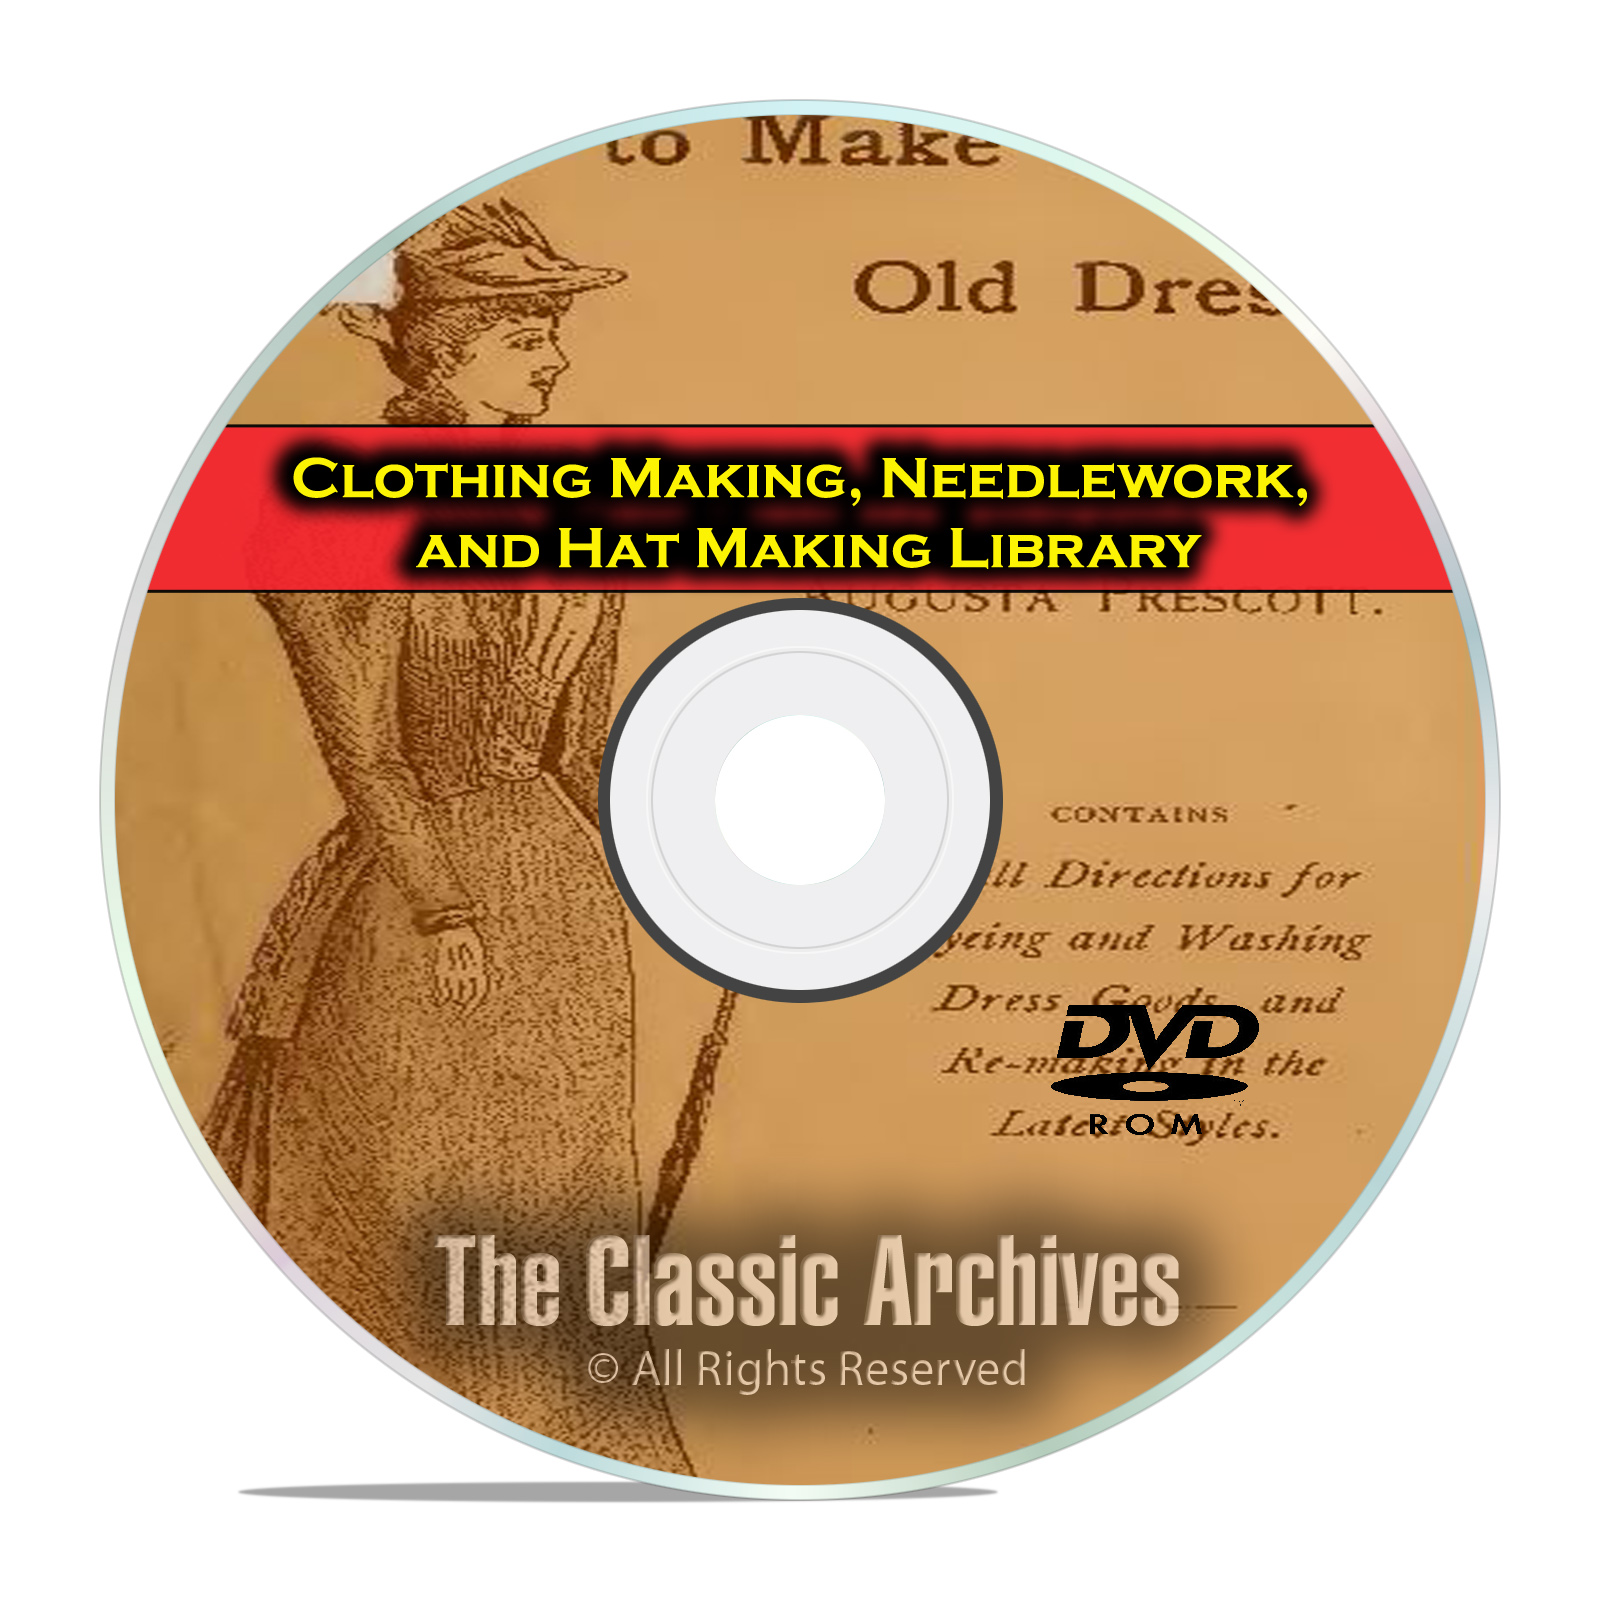 Clothing Making, Needlework, Hat Making Library, 215 Vintage Books DVD